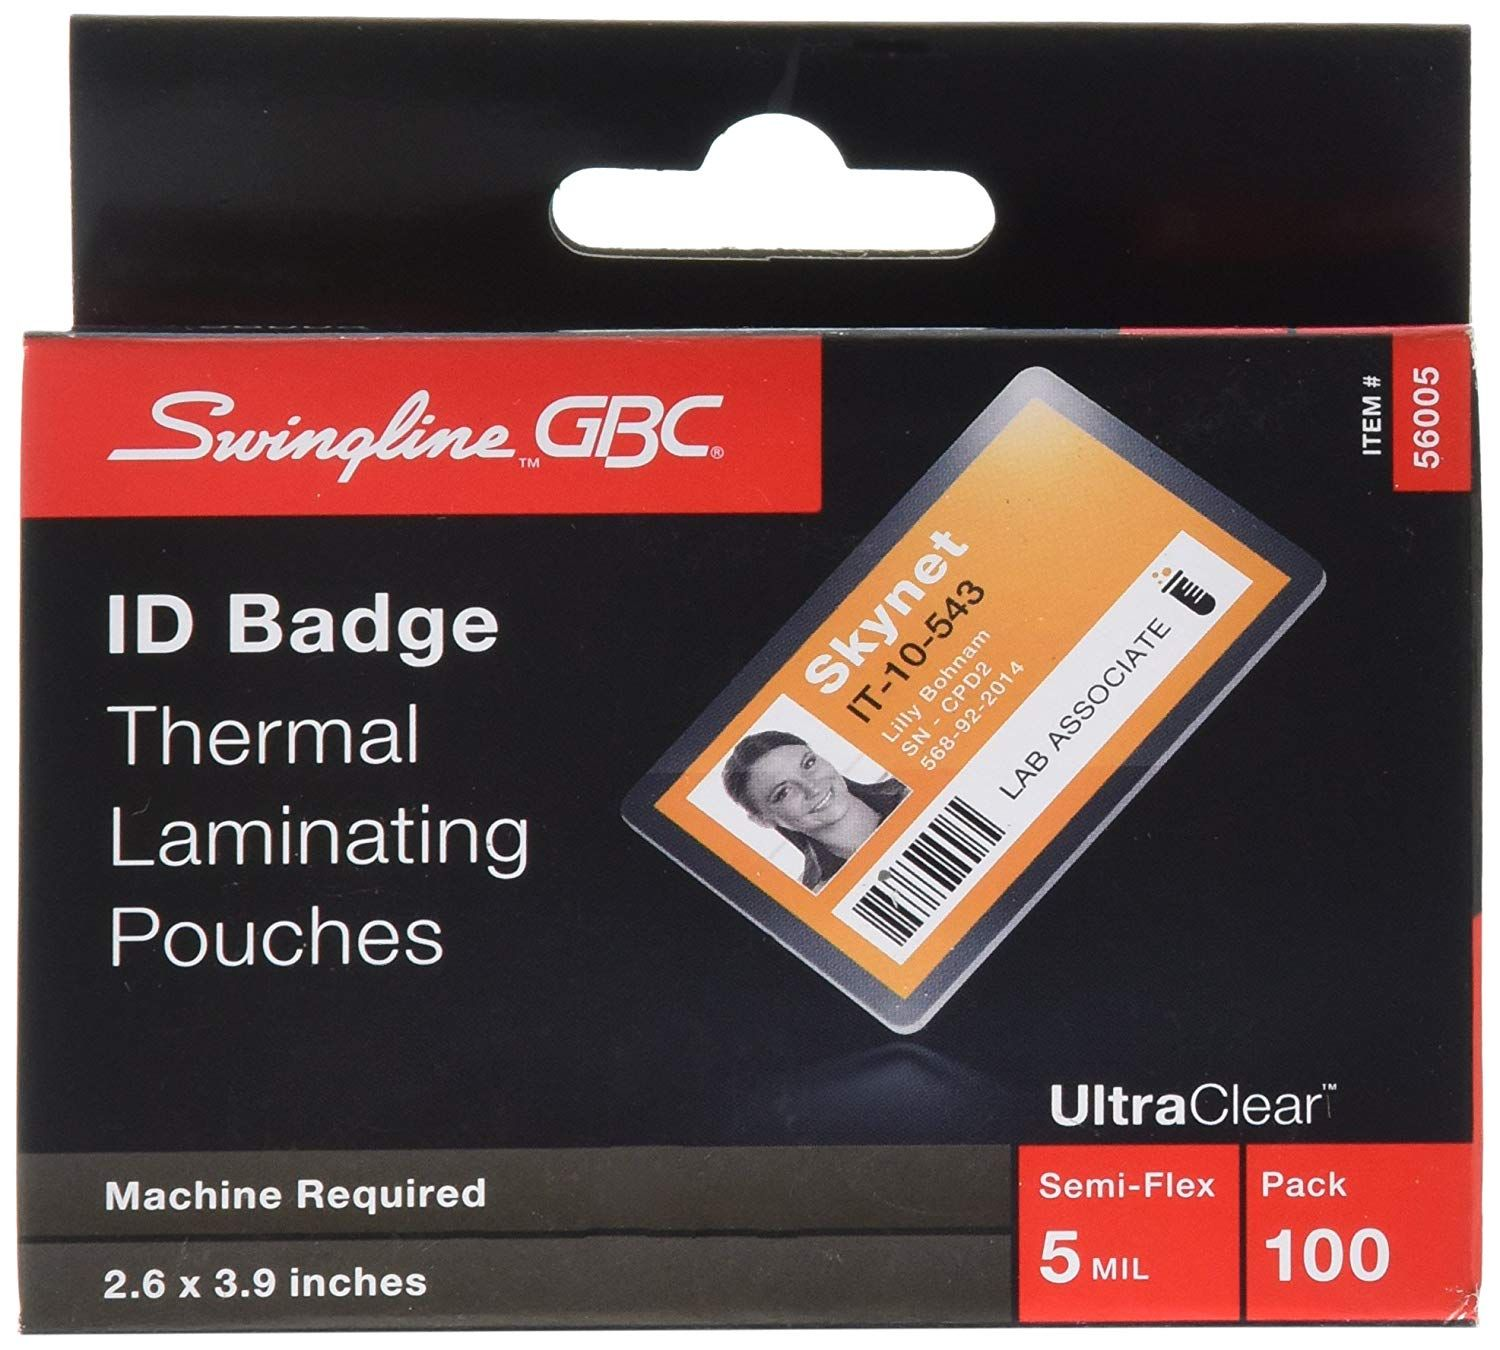 Swingline Gbc Laminating Sheets Thermal Laminating Pouches Id Card Size 5 Mil Heatseal Ultraclear Card Sizes Storing Craft Supplies Craft Supplies Online